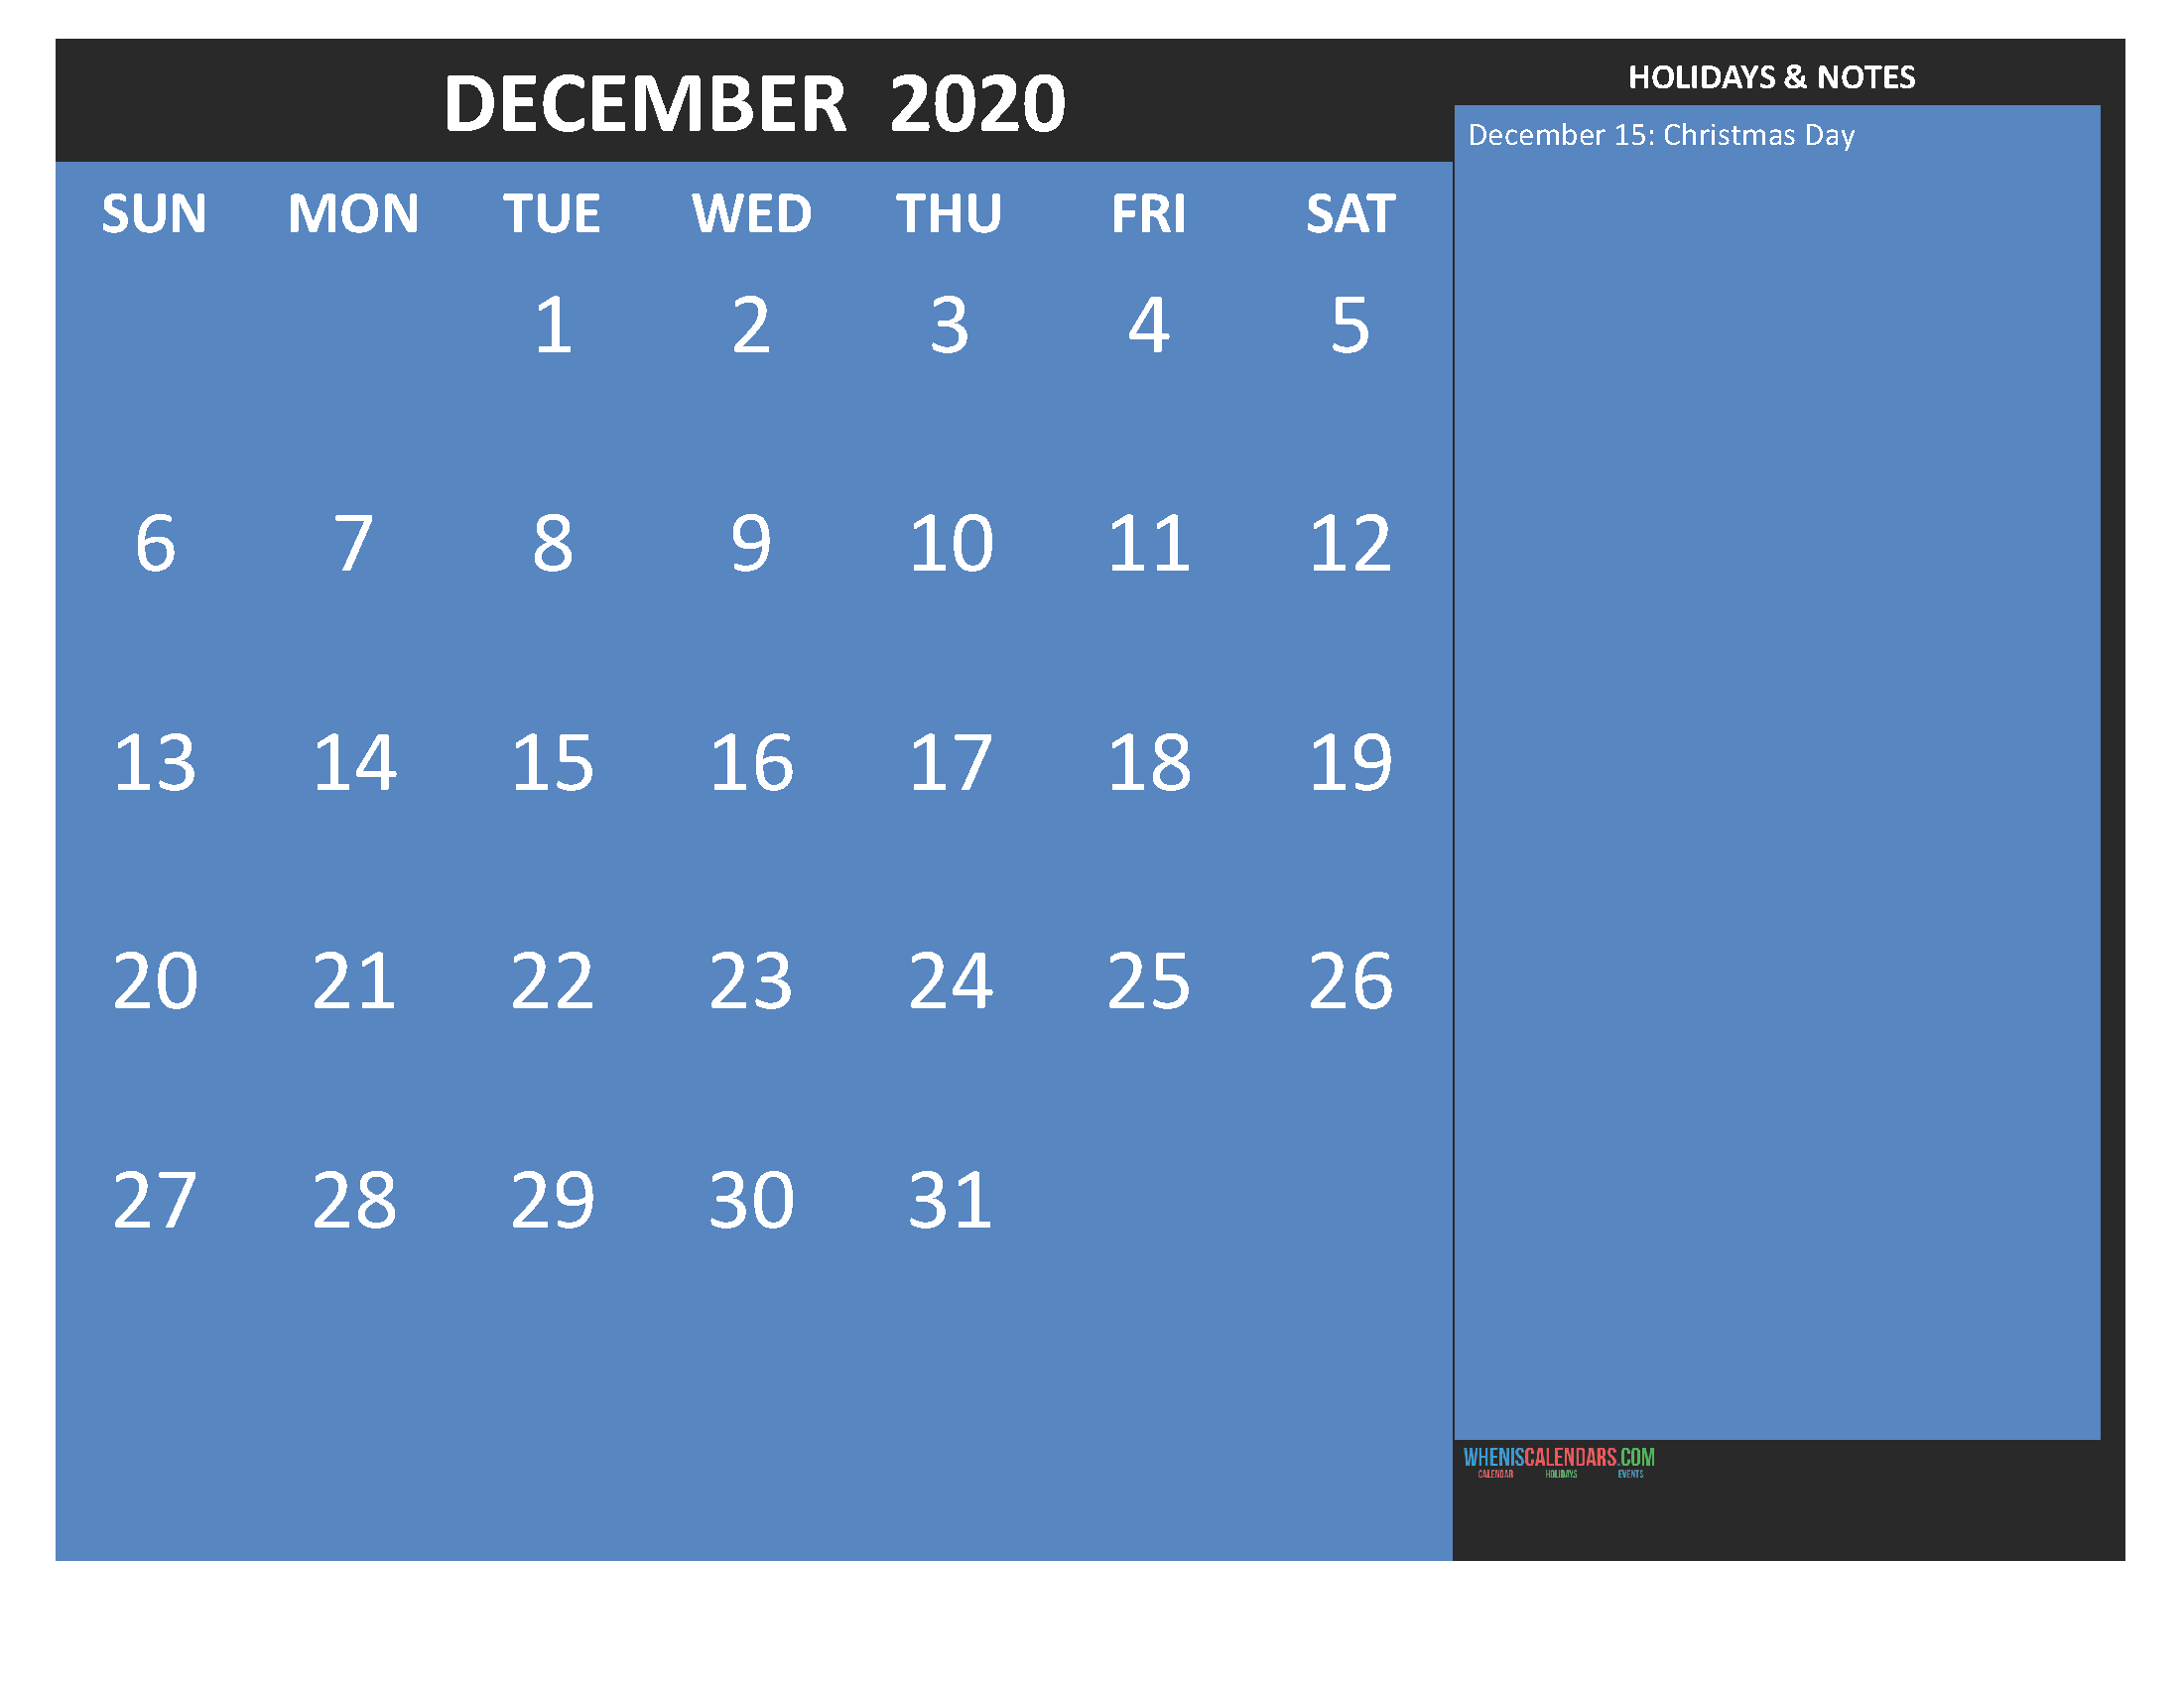 Free Printable Monthly Calendar 2020 December with Holidays